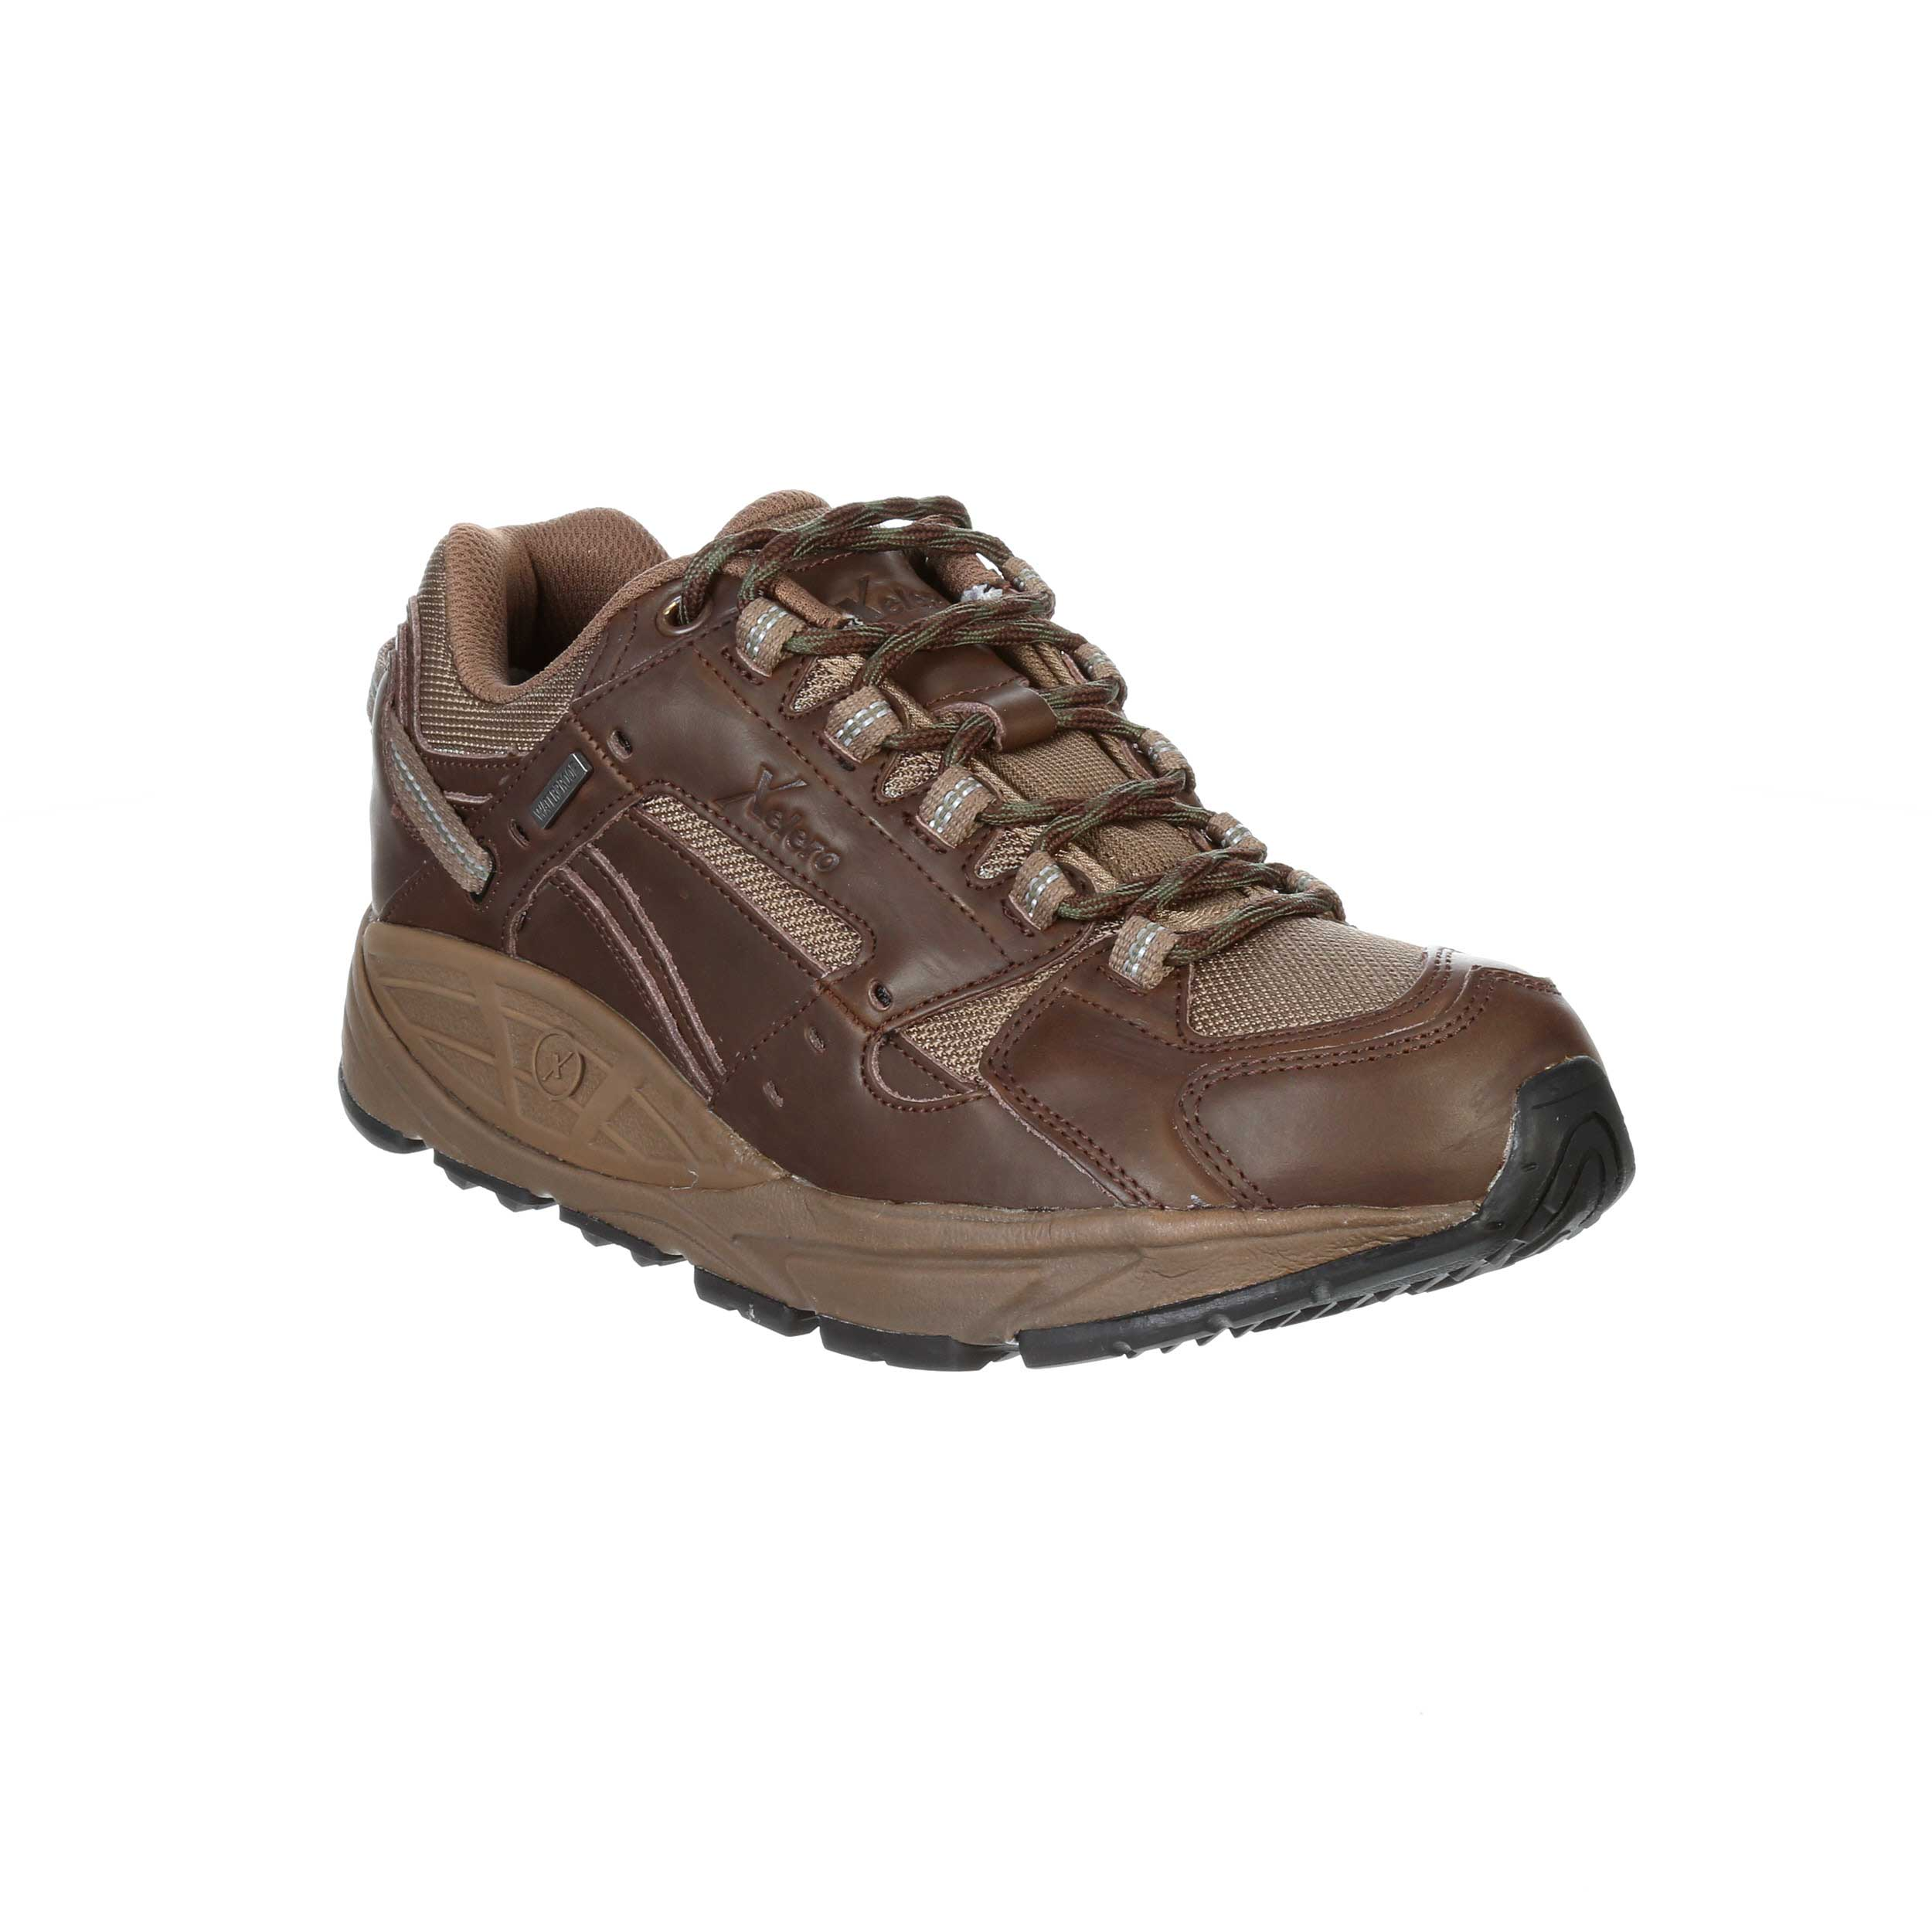 Xelero Shoes Summit X78445 - Men's Comfort Therapeutic Shoe - Outdoor Hiking Boot and Athletic Shoe - Medium (D) - Extra Wide (4E) - Extra Depth for Orthotics